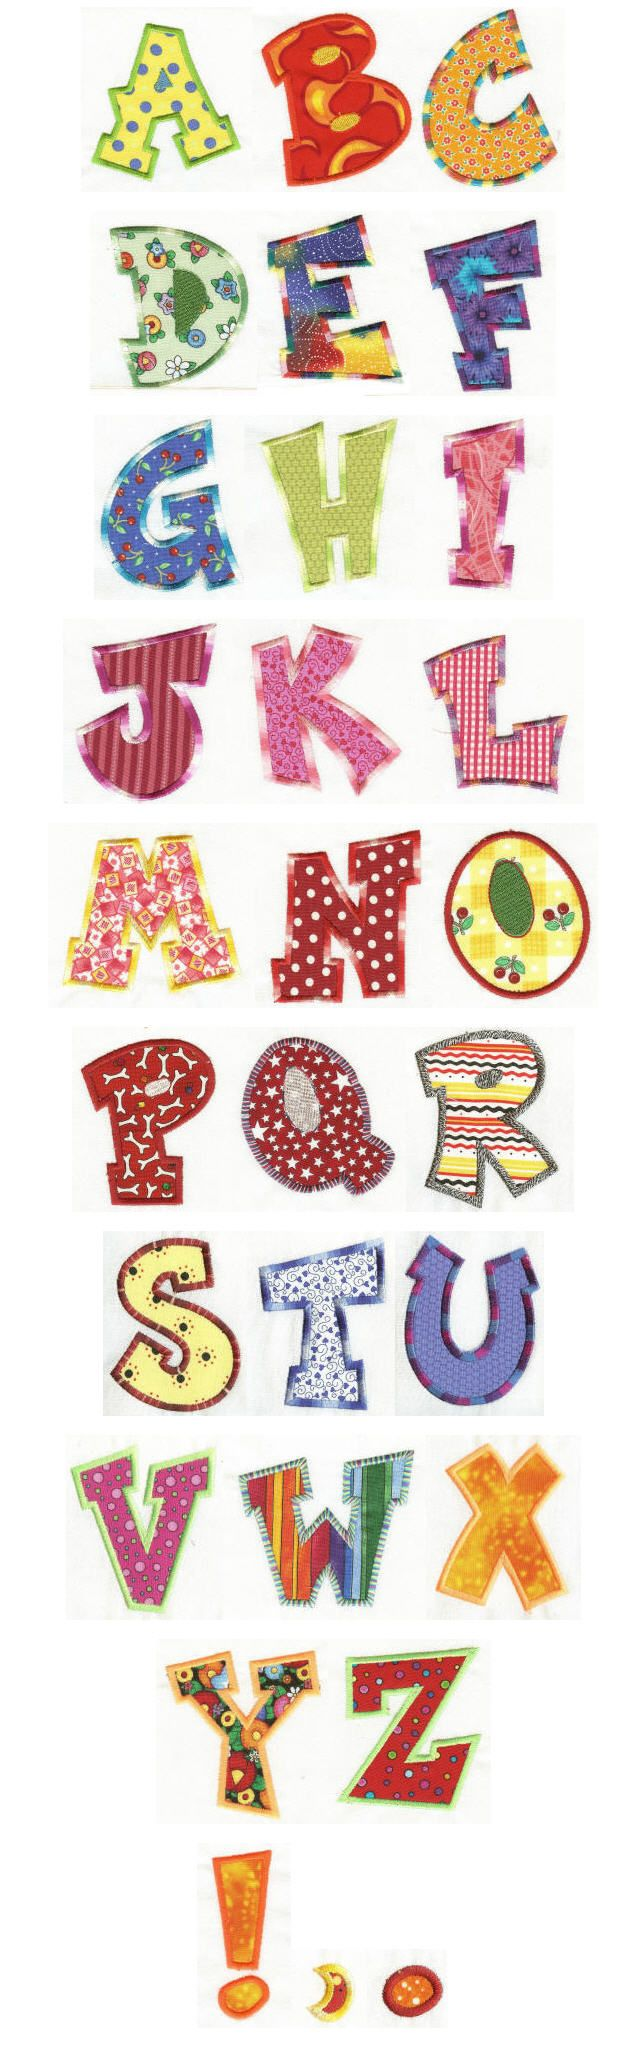 Fun Applique Alphabet                                                                                                                                                                                 Más